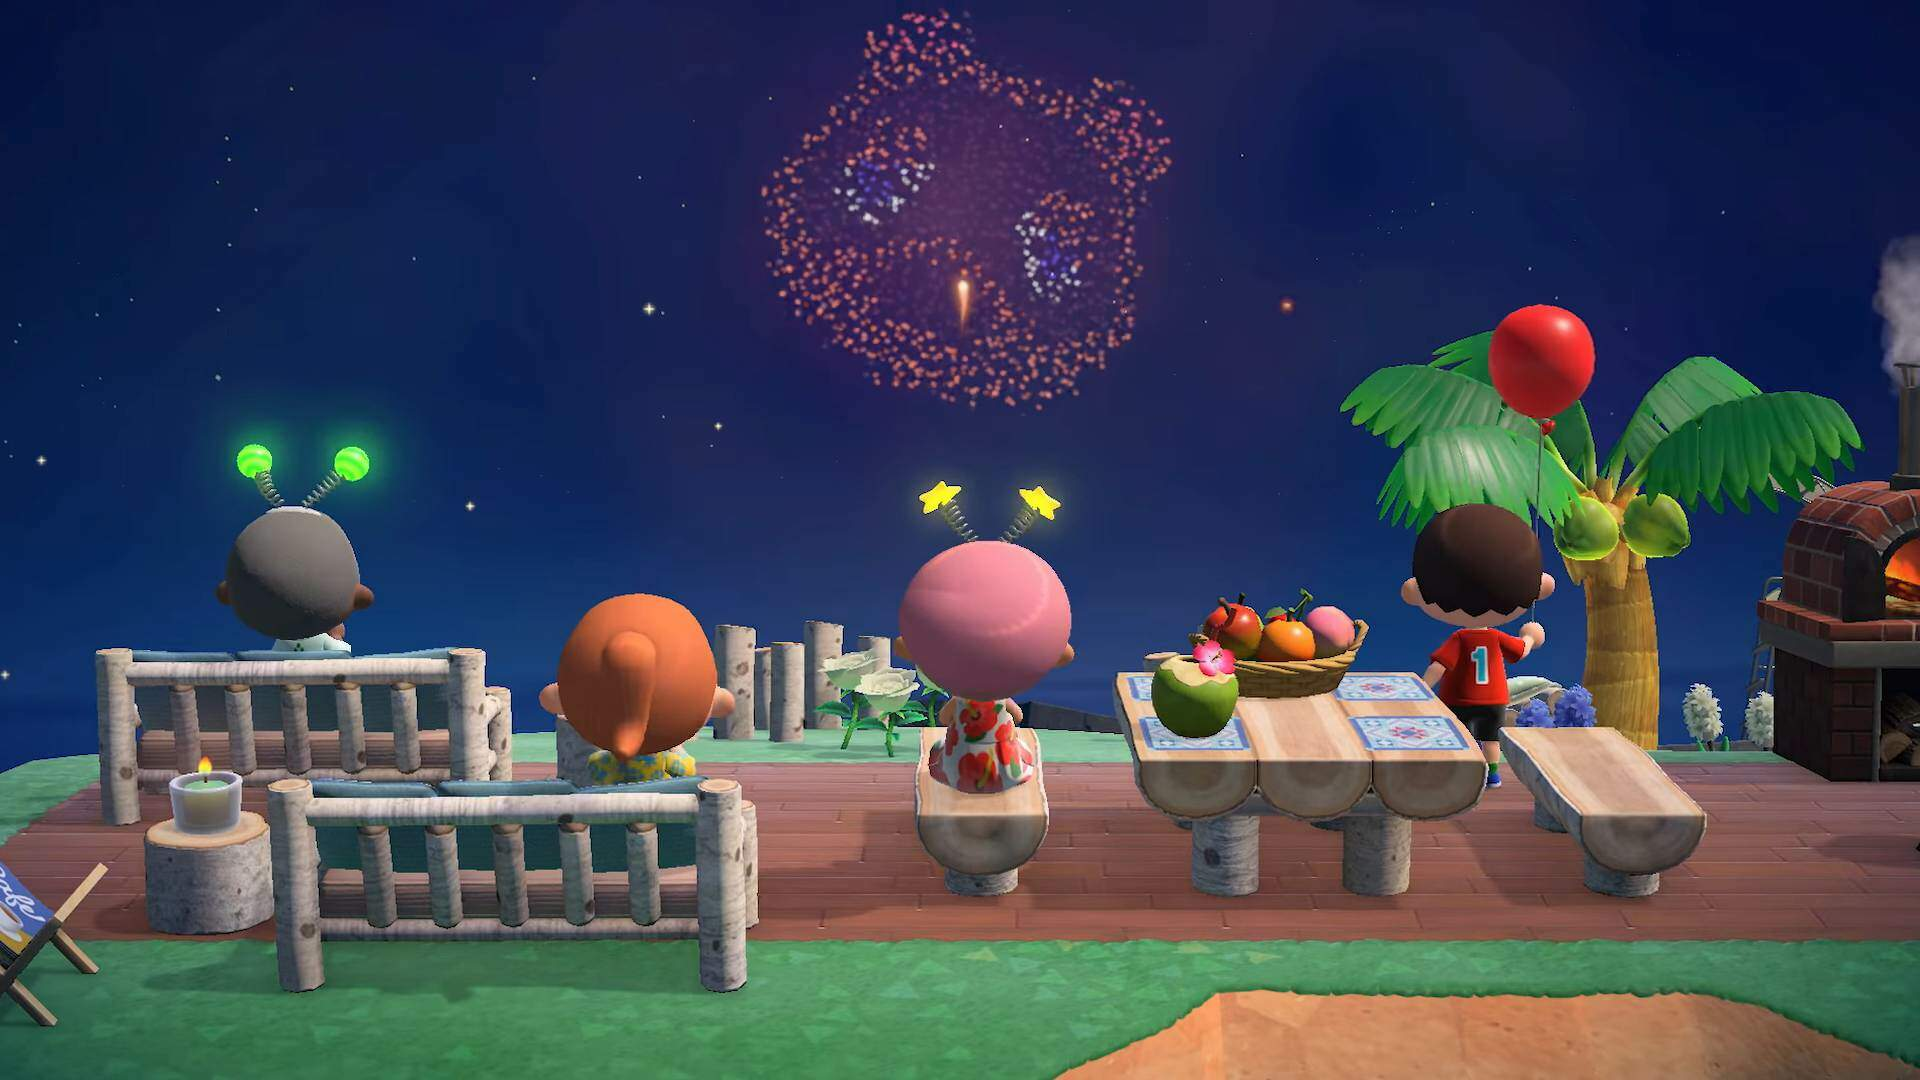 Animal Crossing: New Horizons's Fireworks Are Being Put to All Sorts of Creative Uses